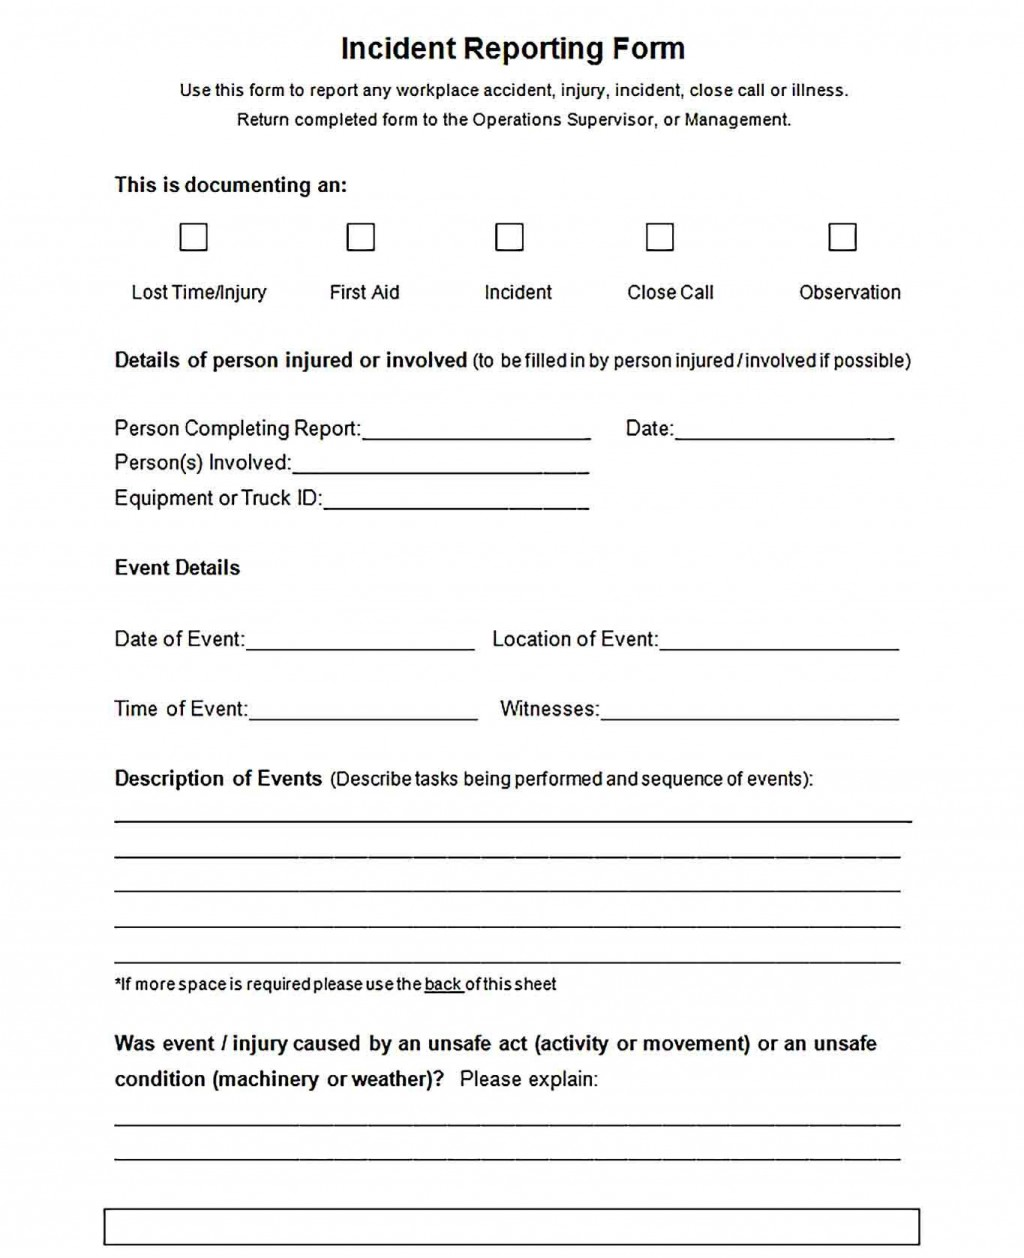 008 Rare Free Blank Expense Report Form Photo  Forms TemplateLarge